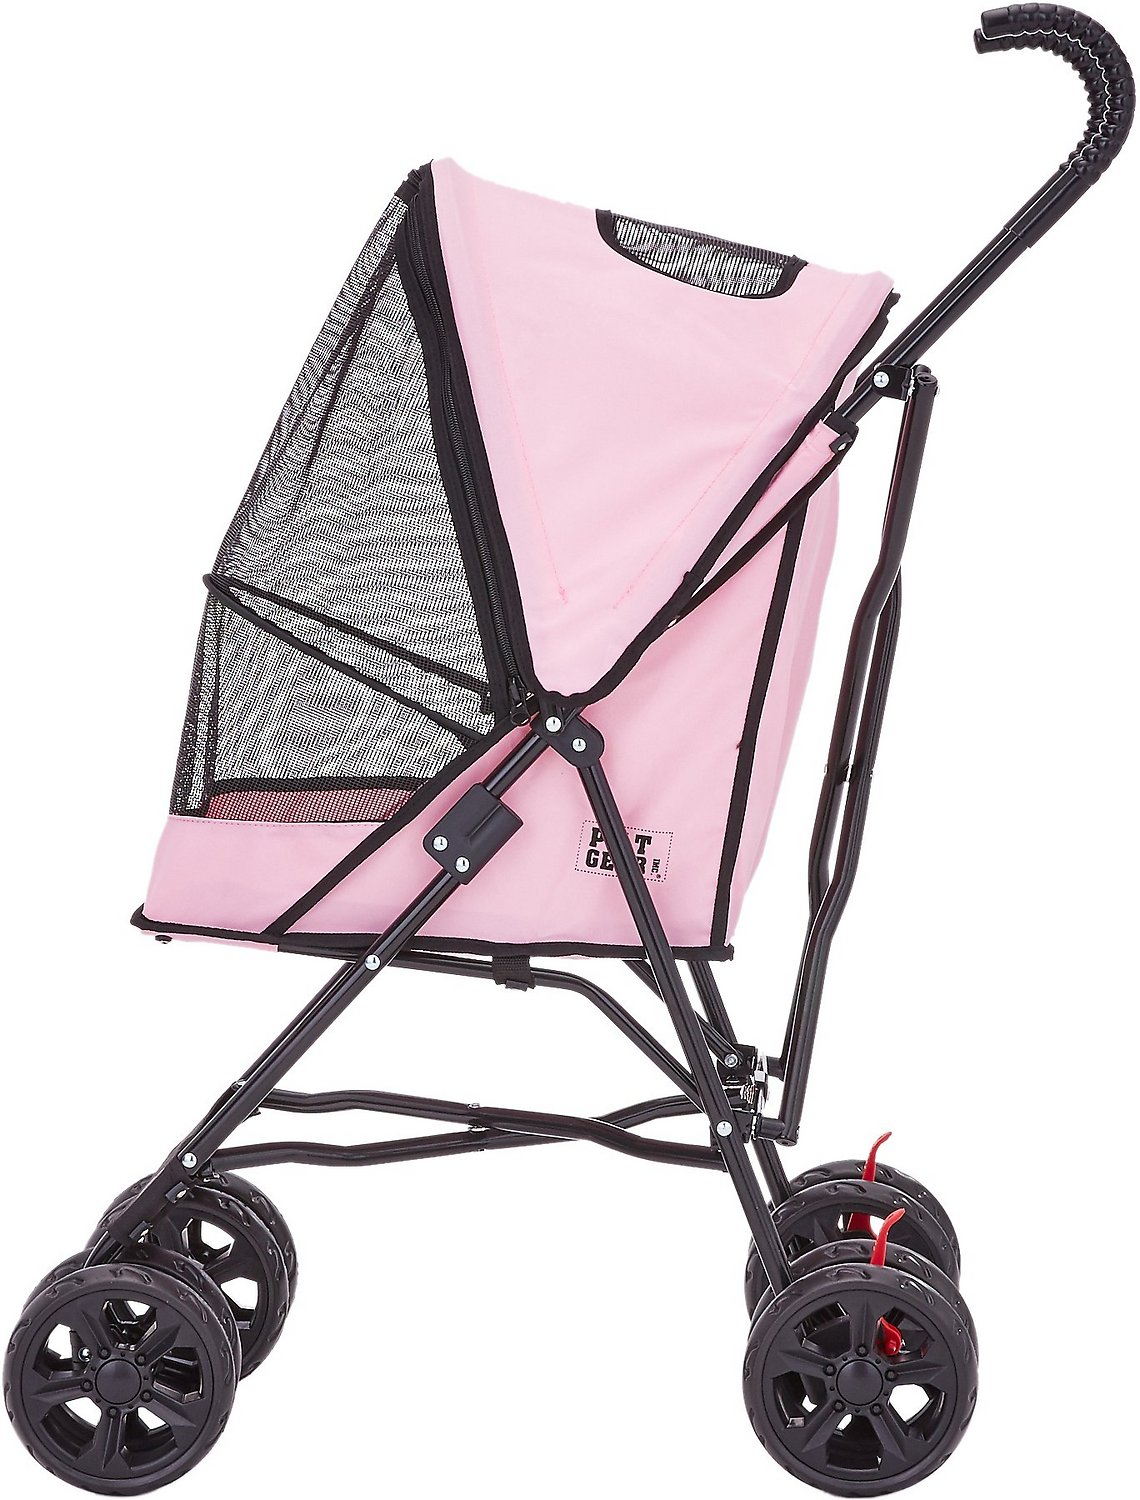 Pet Gear Travel Lite Pet Stroller, Pink - Chewy.com